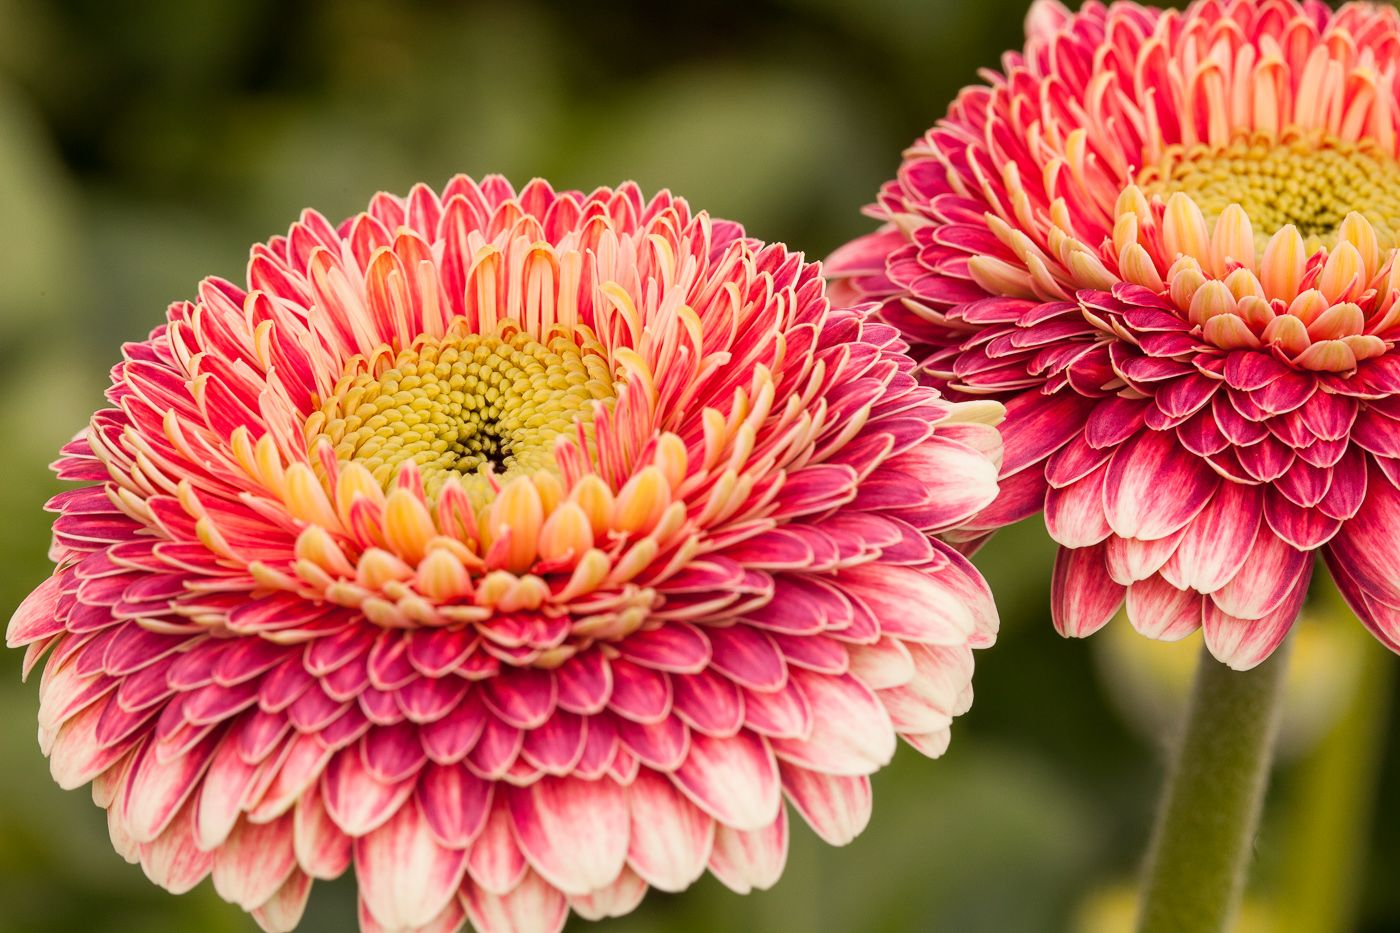 Pomponi Seth The Most Amazing Filled One That We Have Ever Seen What A Colours In One Flower This Flower Is Named Beautiful Flowers Gerbera Daisy Gerbera